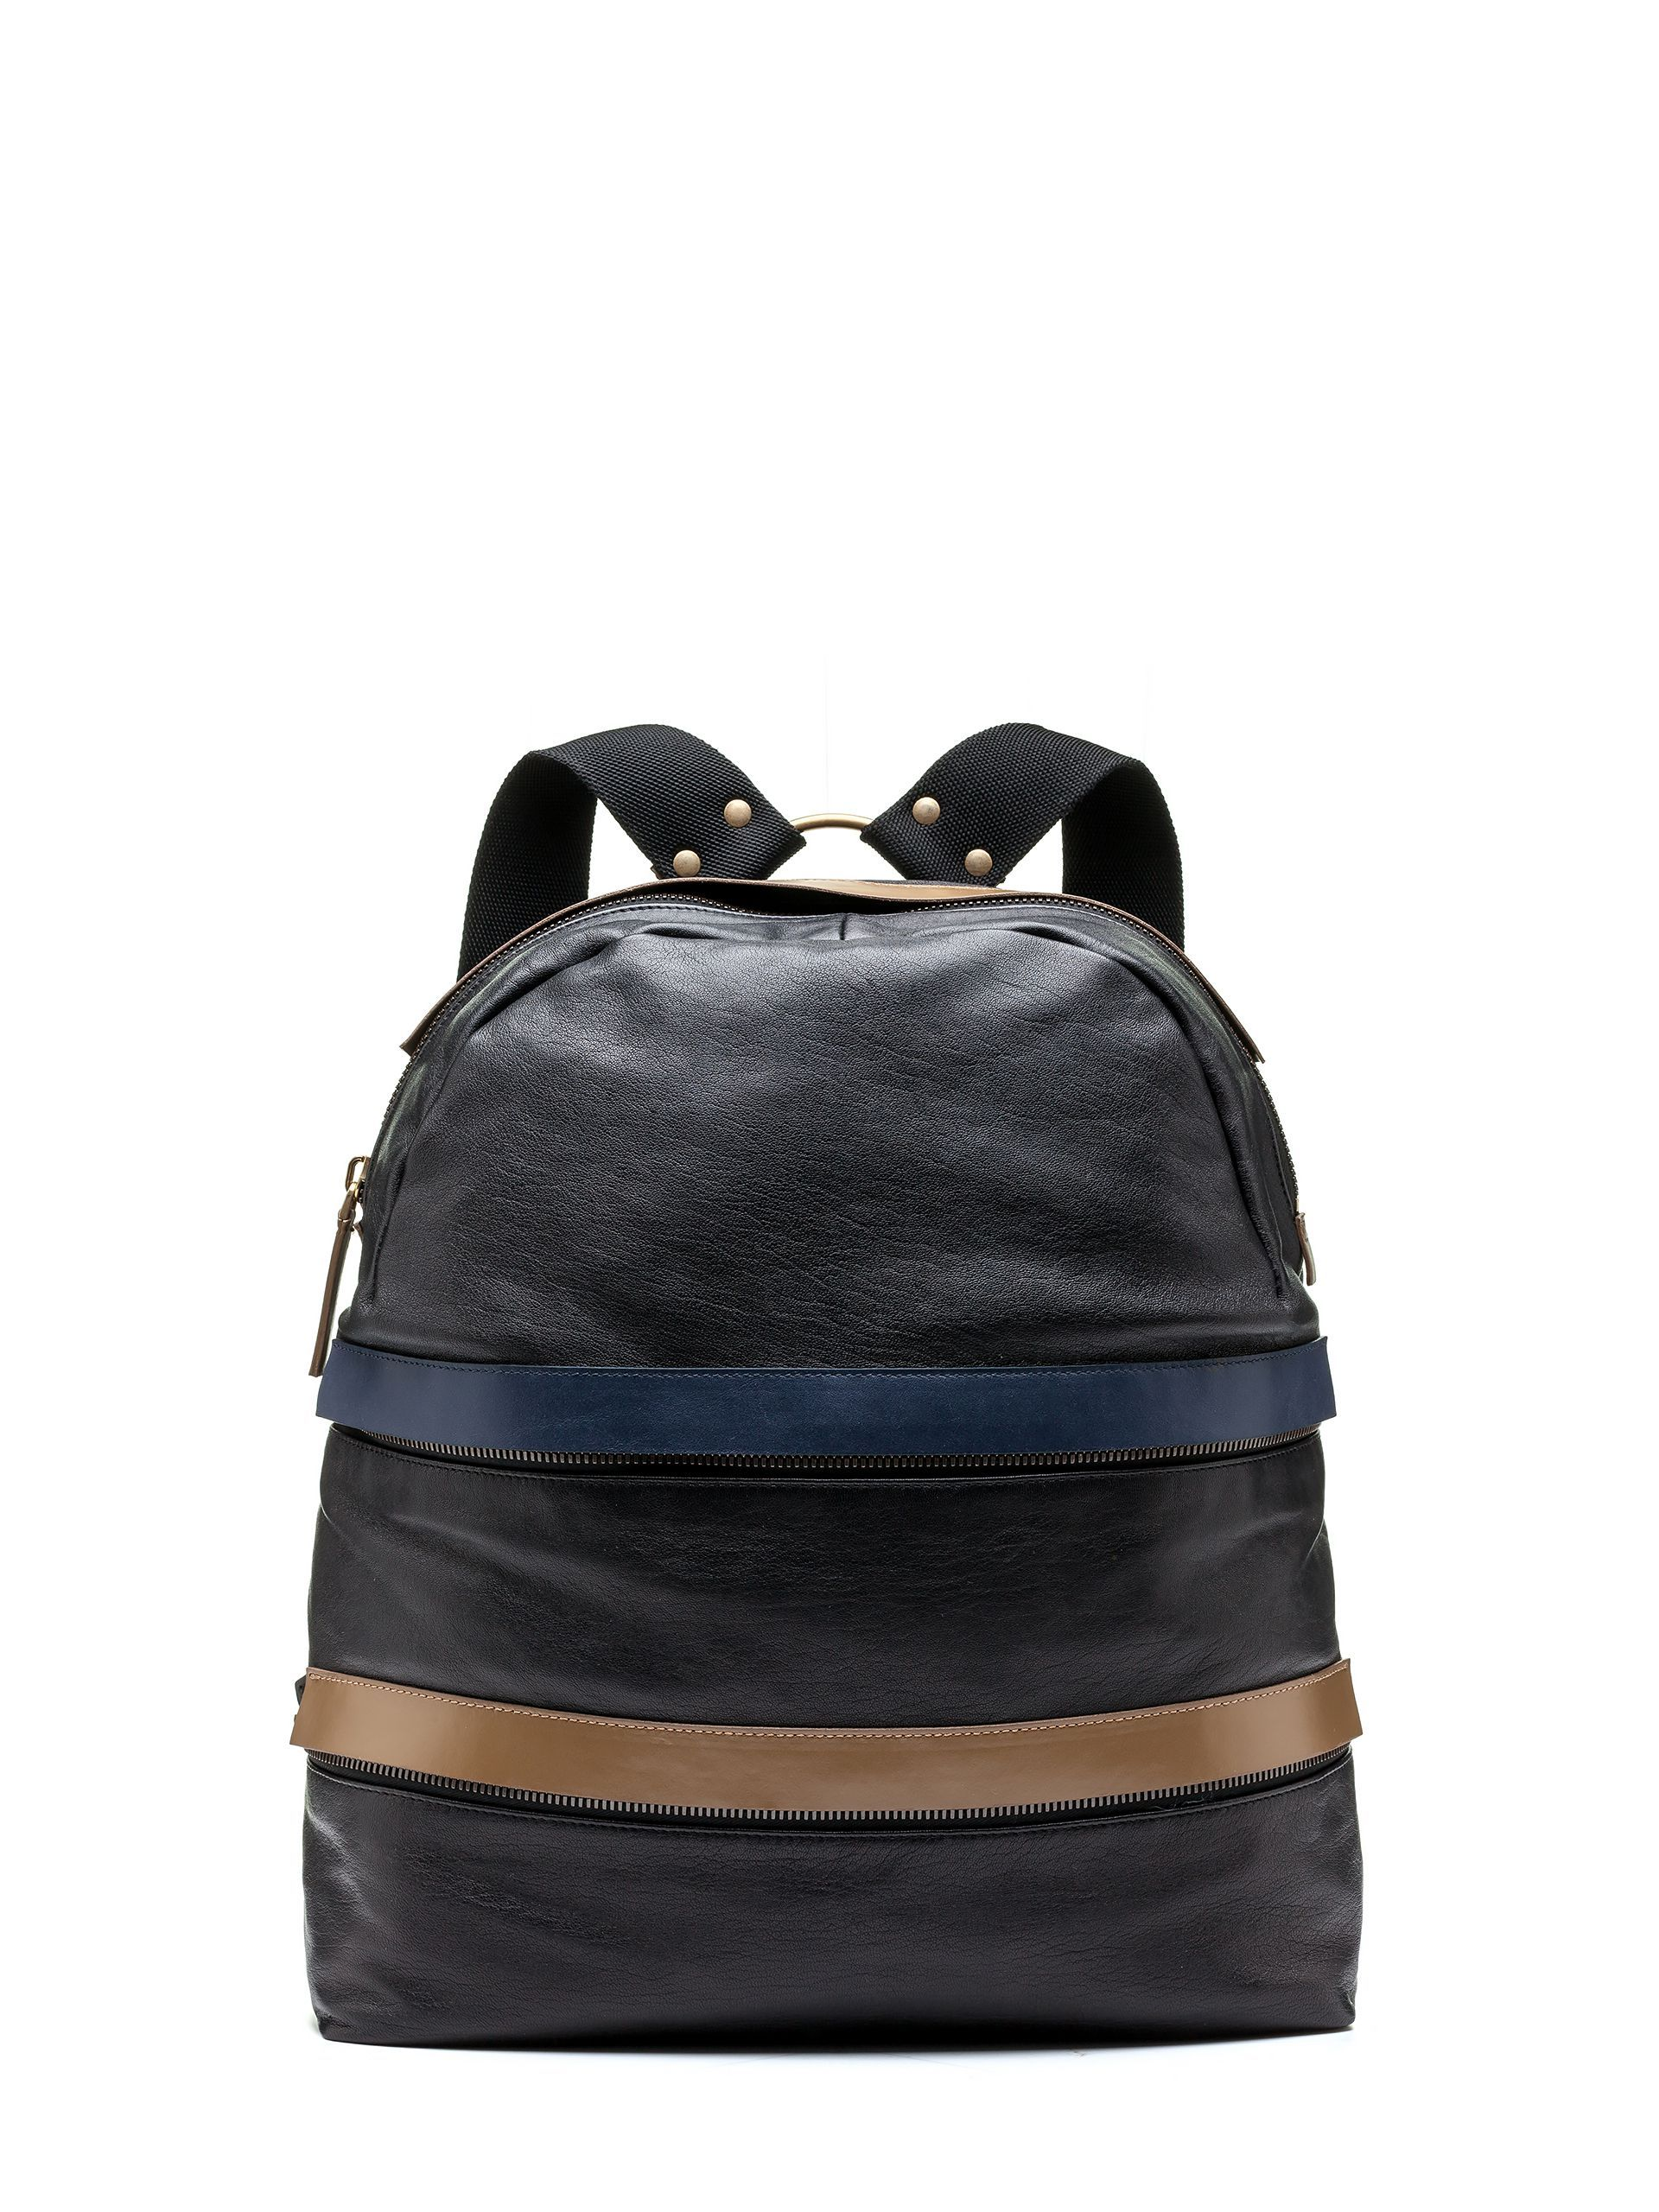 Men Men On Marni Online Store Backpacks Bags Designer Bags